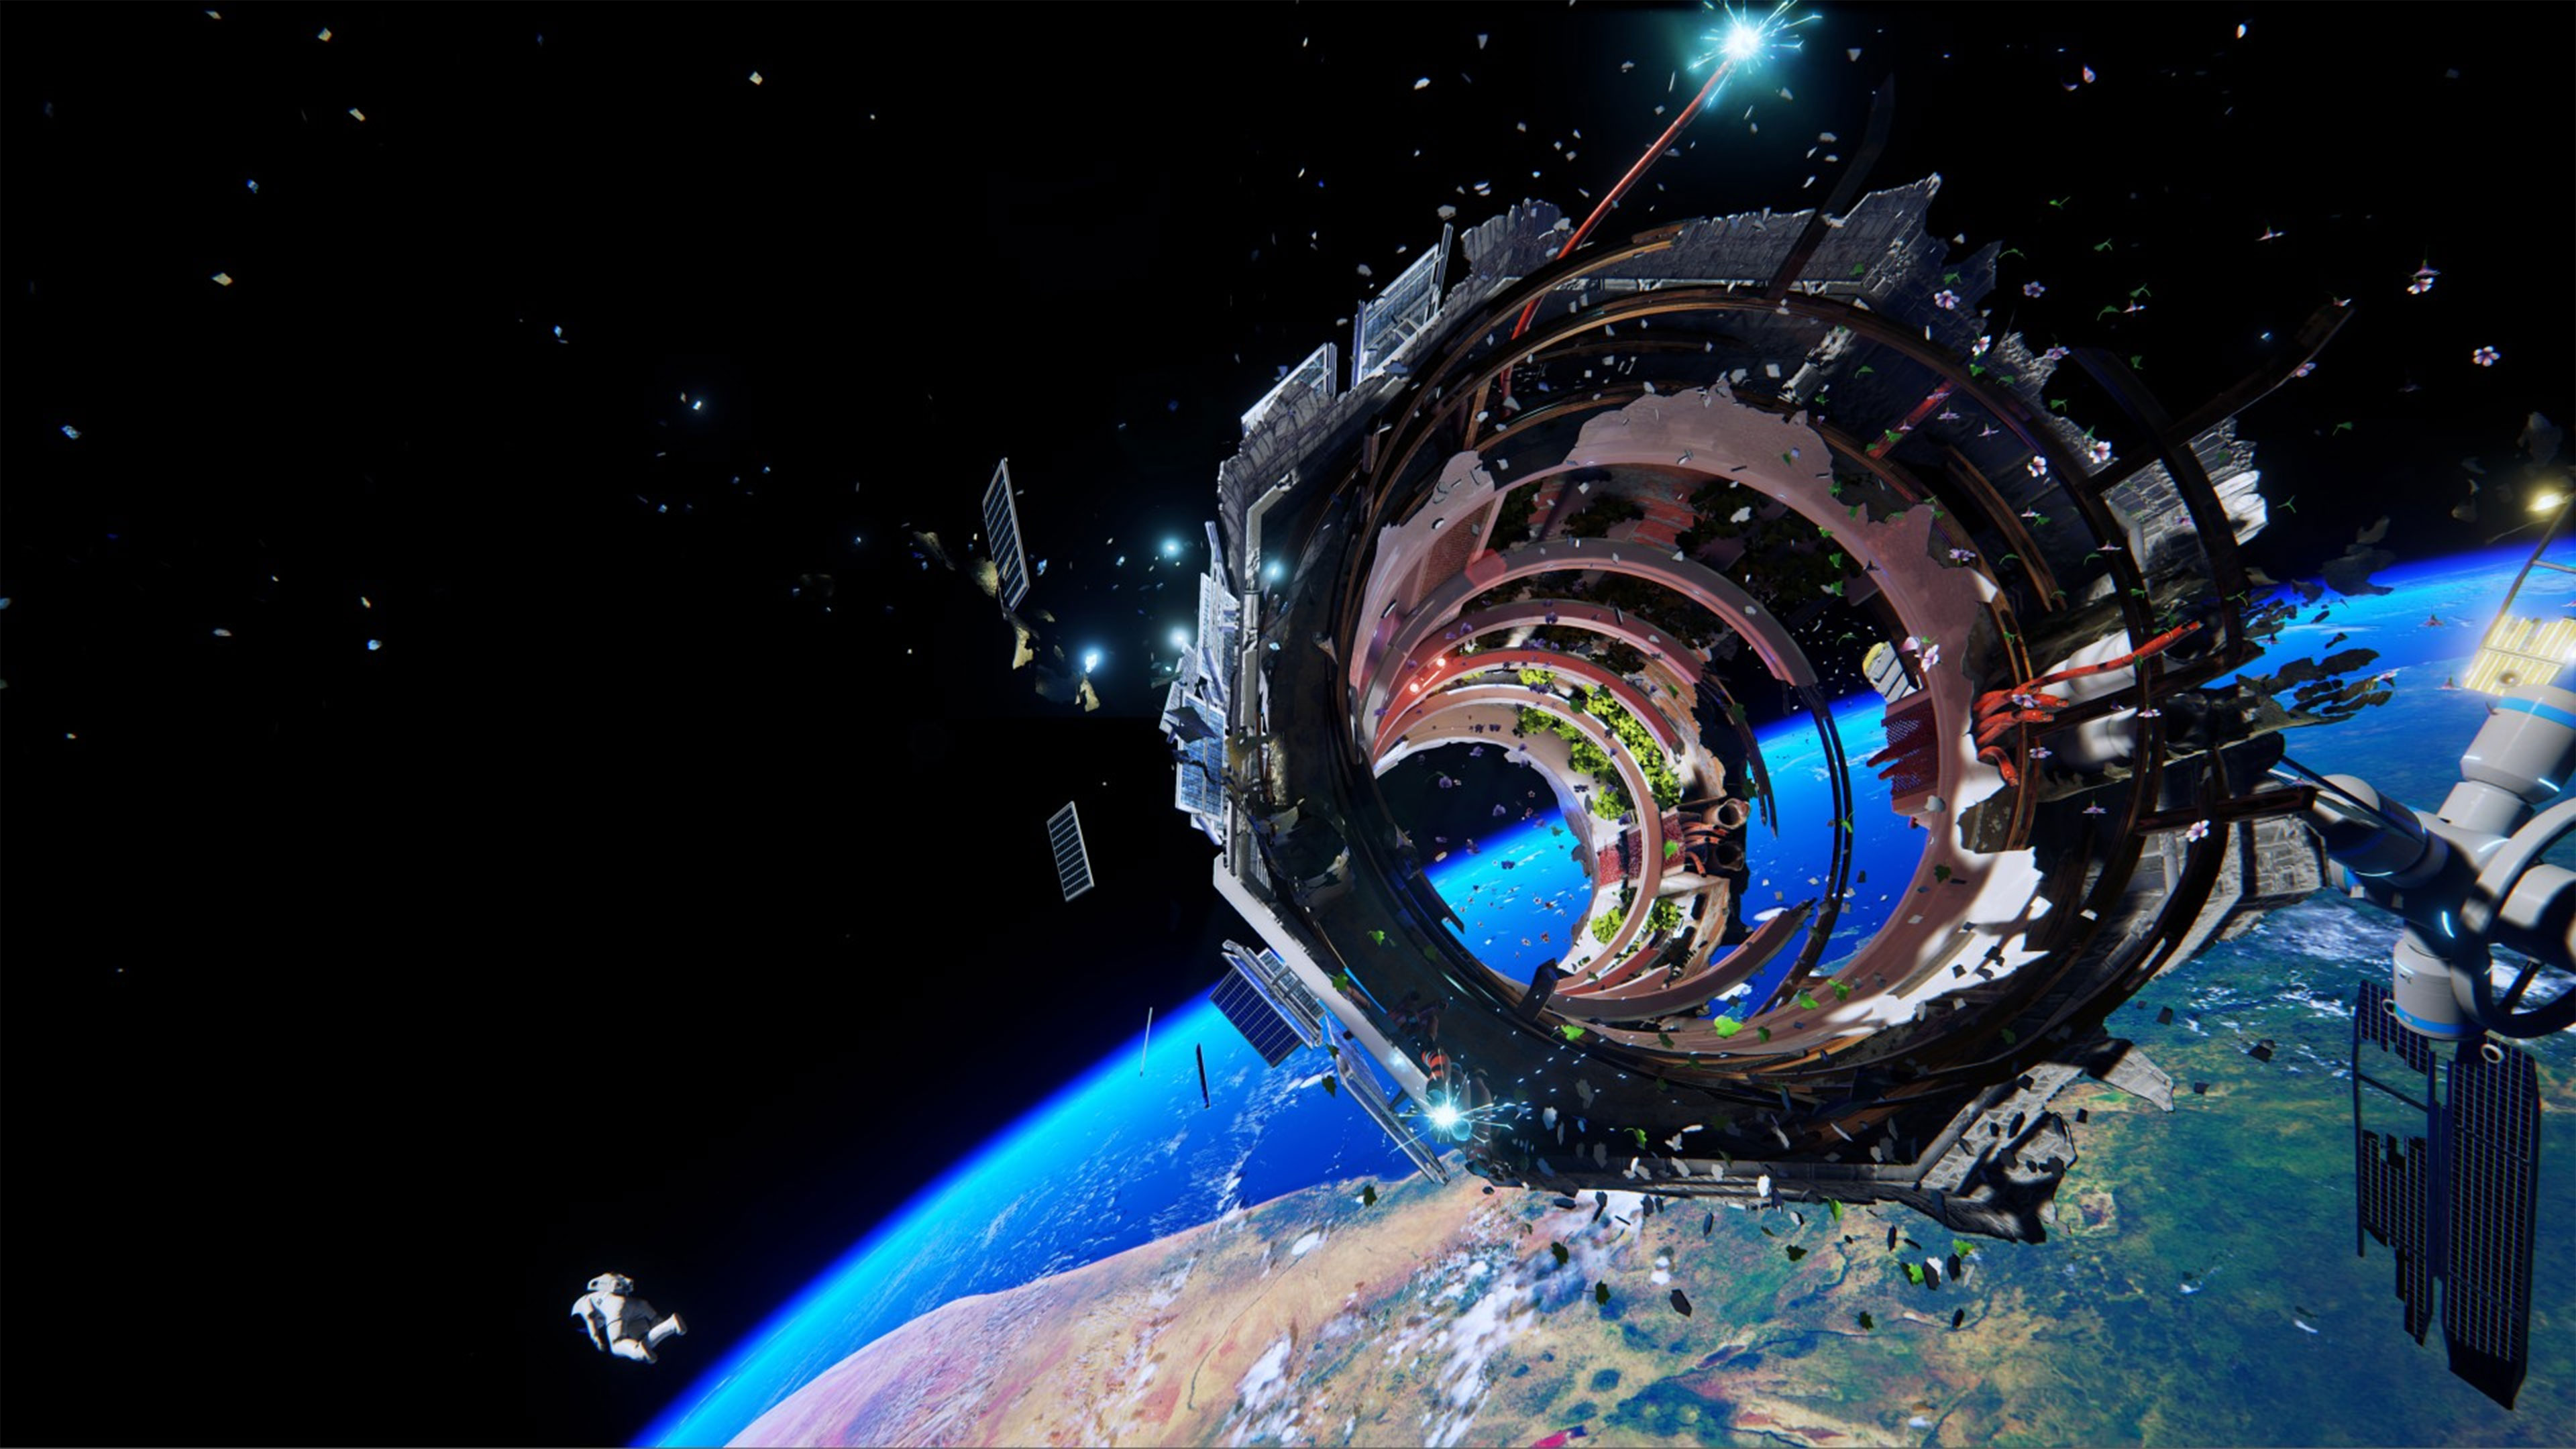 Engineering And Technology Ultra Hd Wallpapers: Adr1ft Wallpapers In Ultra HD